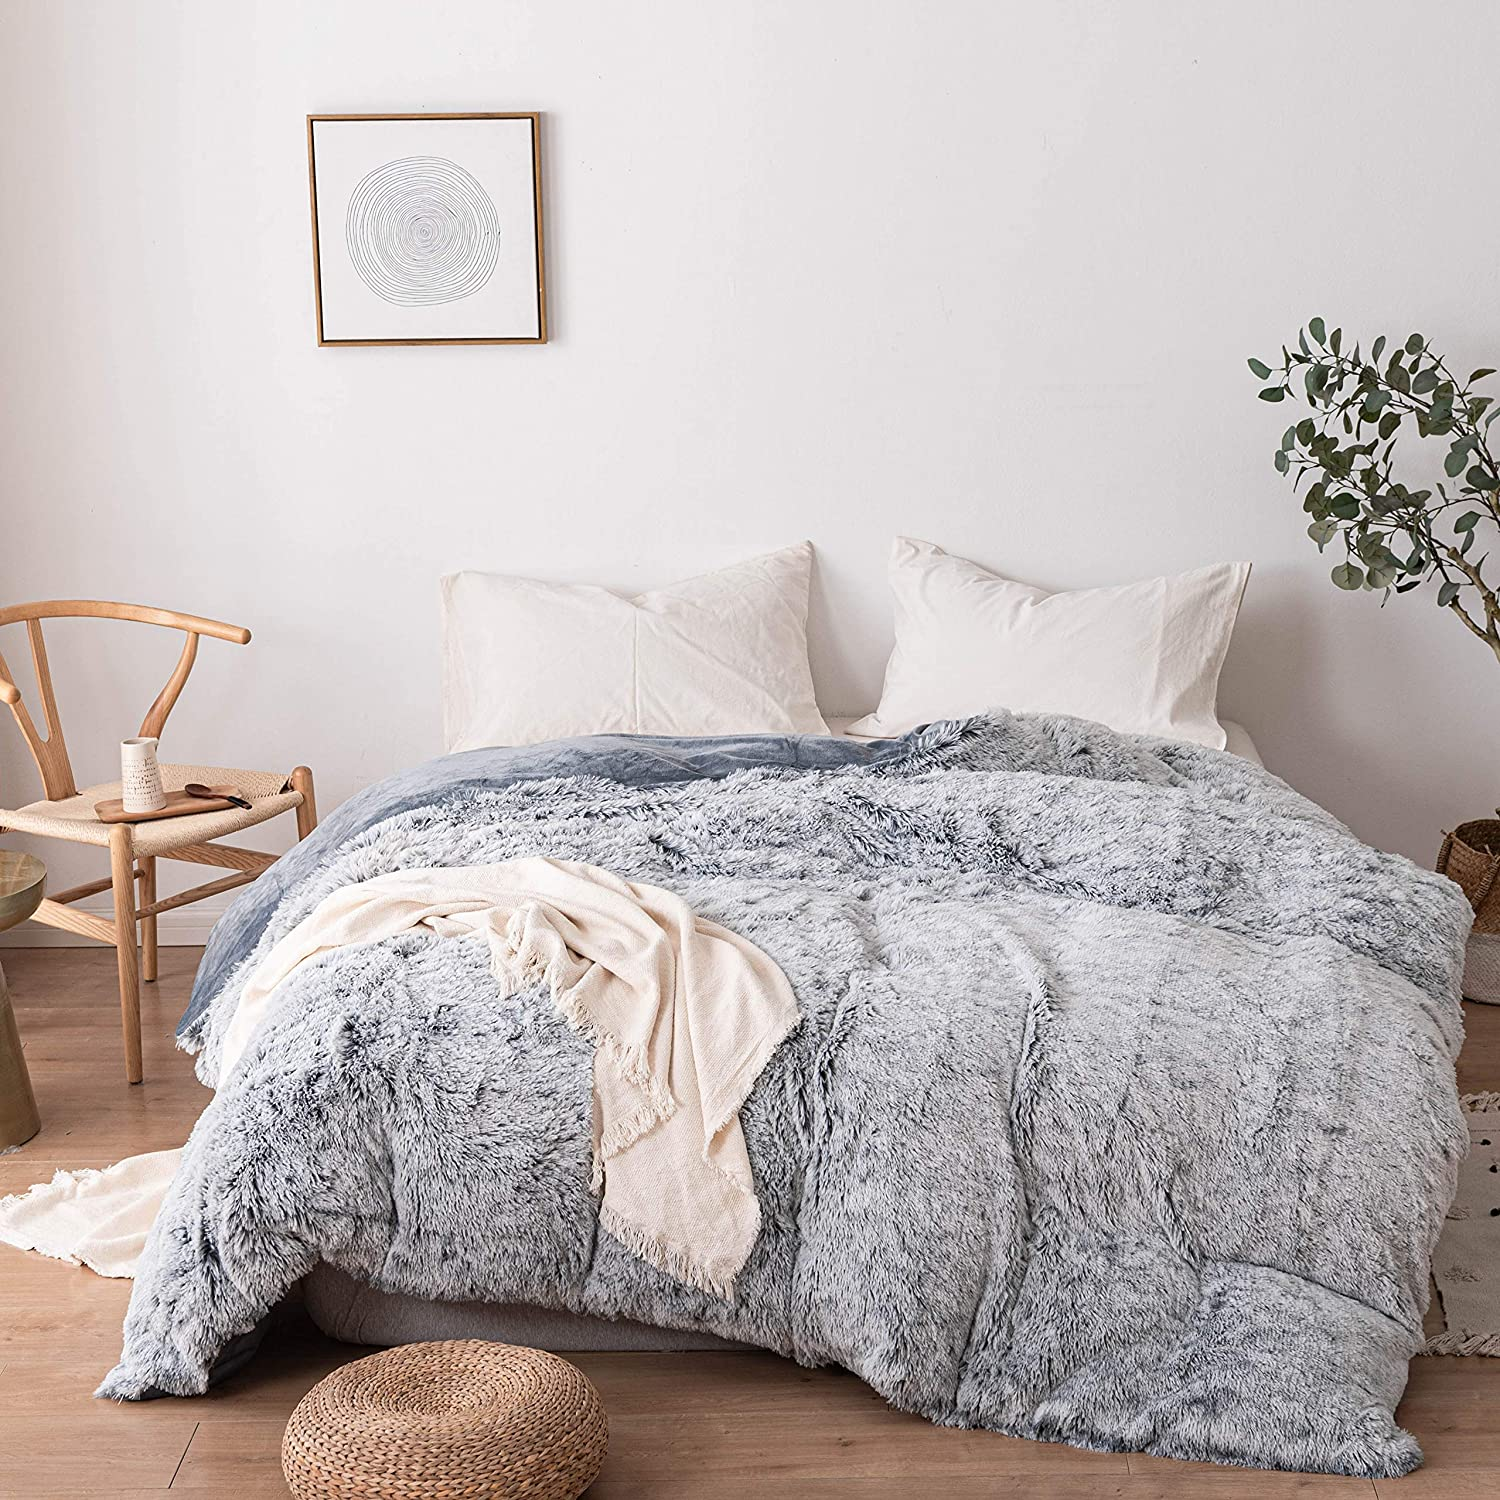 Roore Faux Fur Duvet Cover Luxury Duv SEAL limited product Shaggy Soft Los Angeles Mall Plush Fluffy